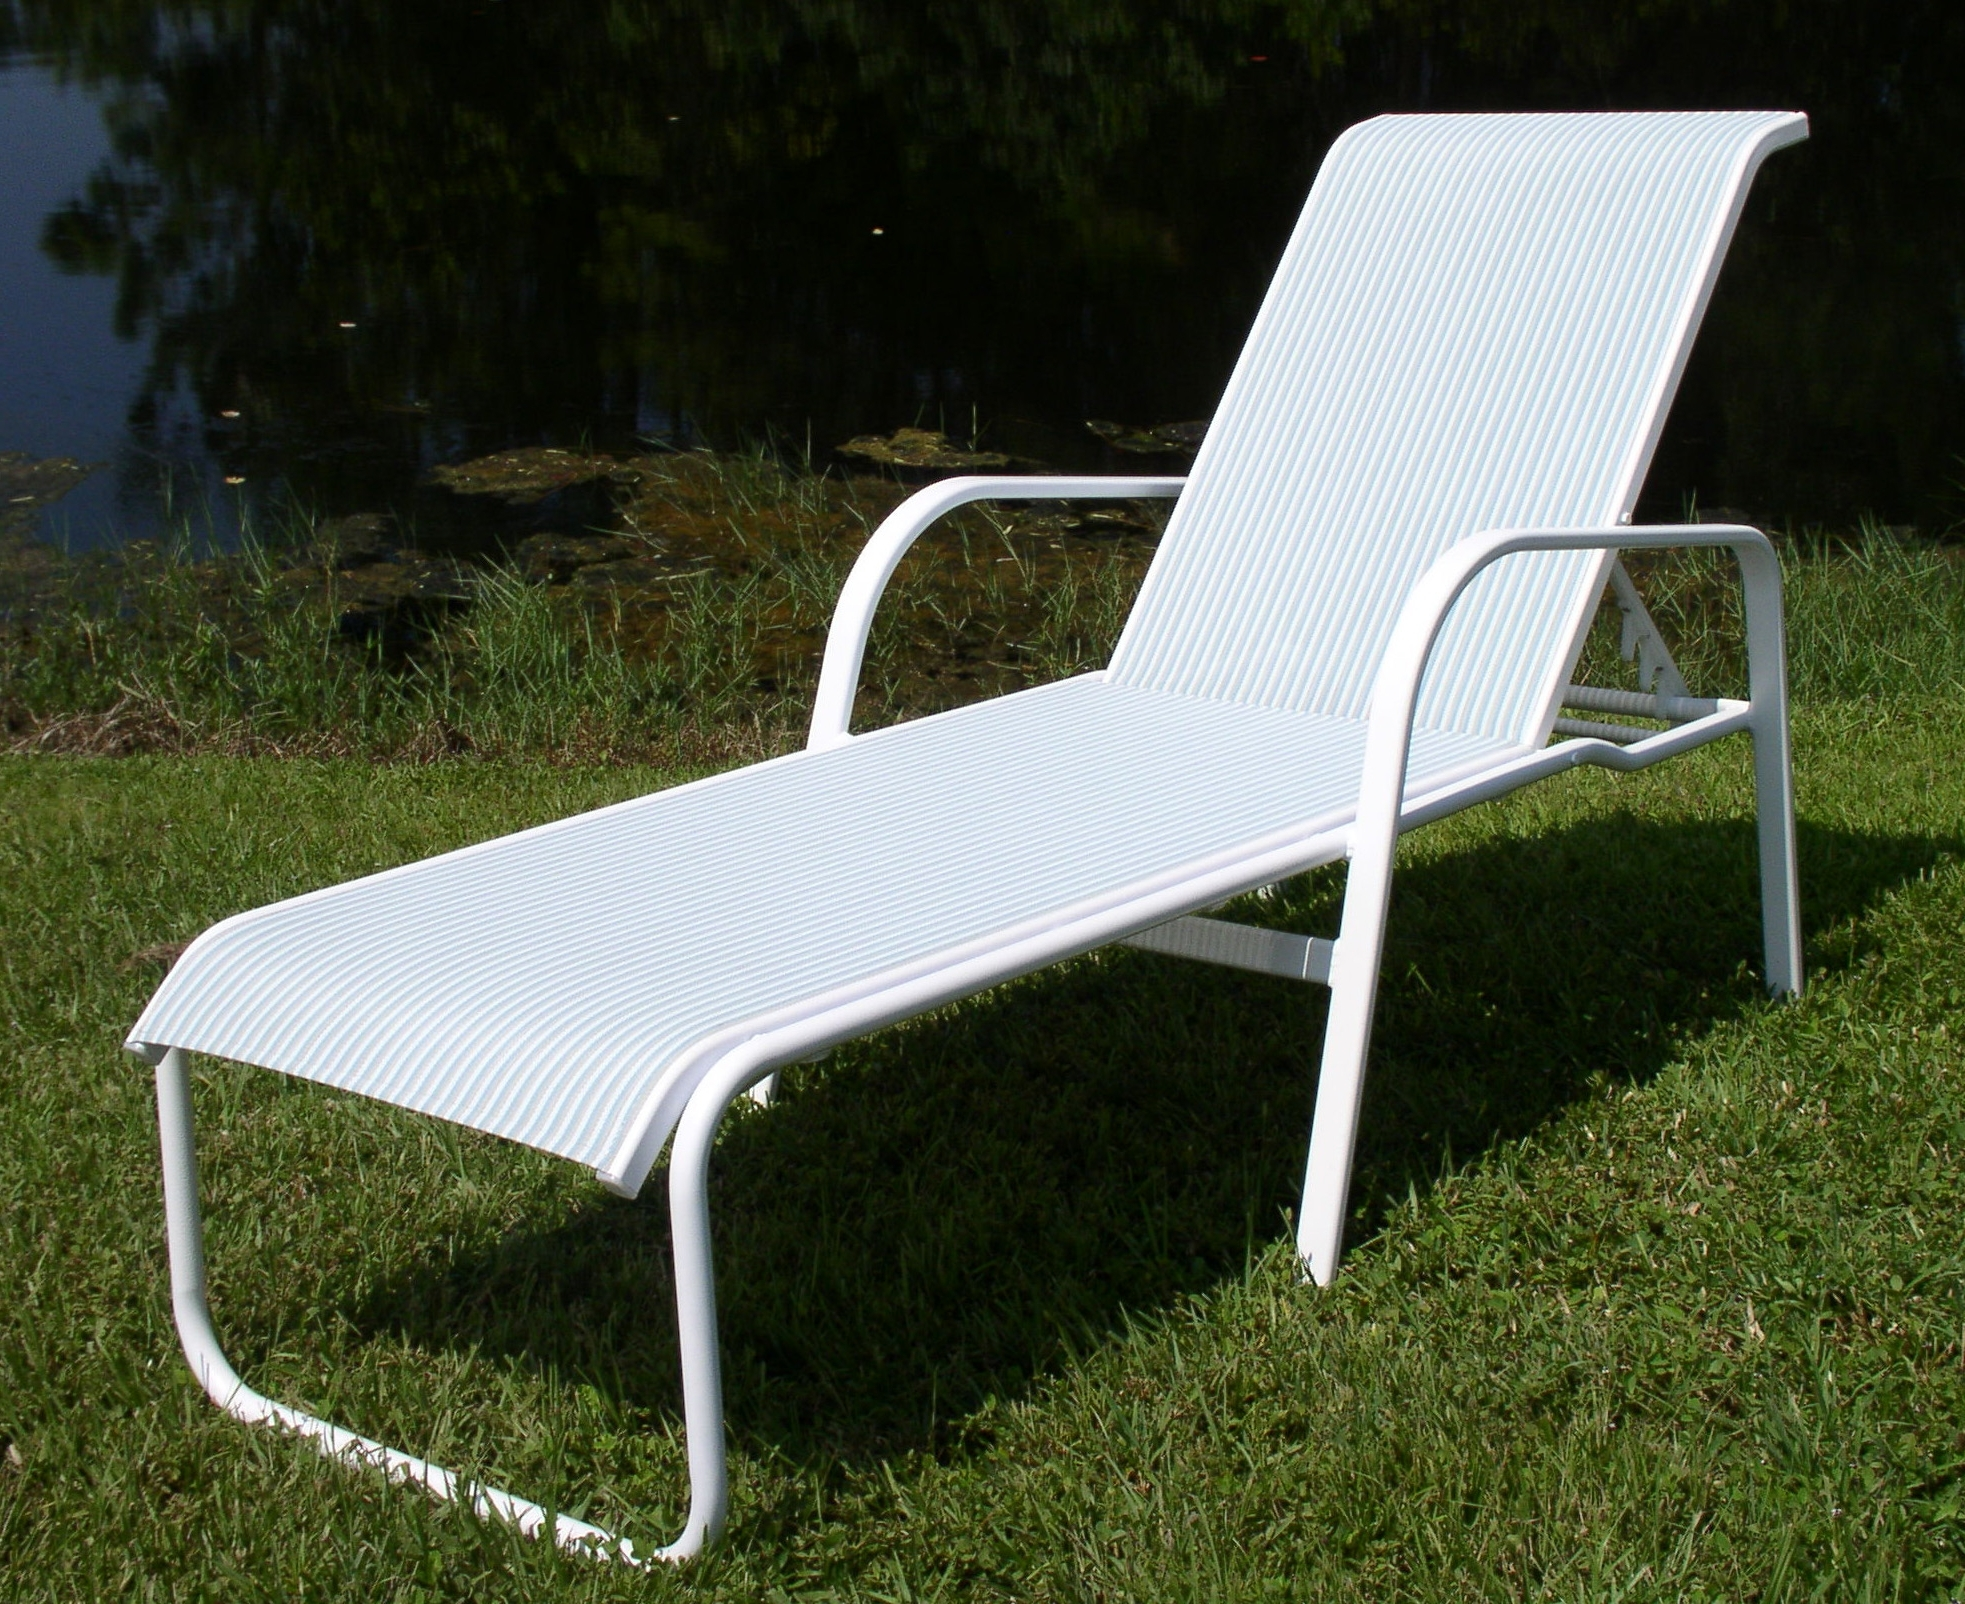 Widely Used Sling Chaise Lounge Chair Attractive Pool Chairs 15 In Seat Ocean Intended For Outdoor Mesh Chaise Lounge Chairs (View 14 of 15)